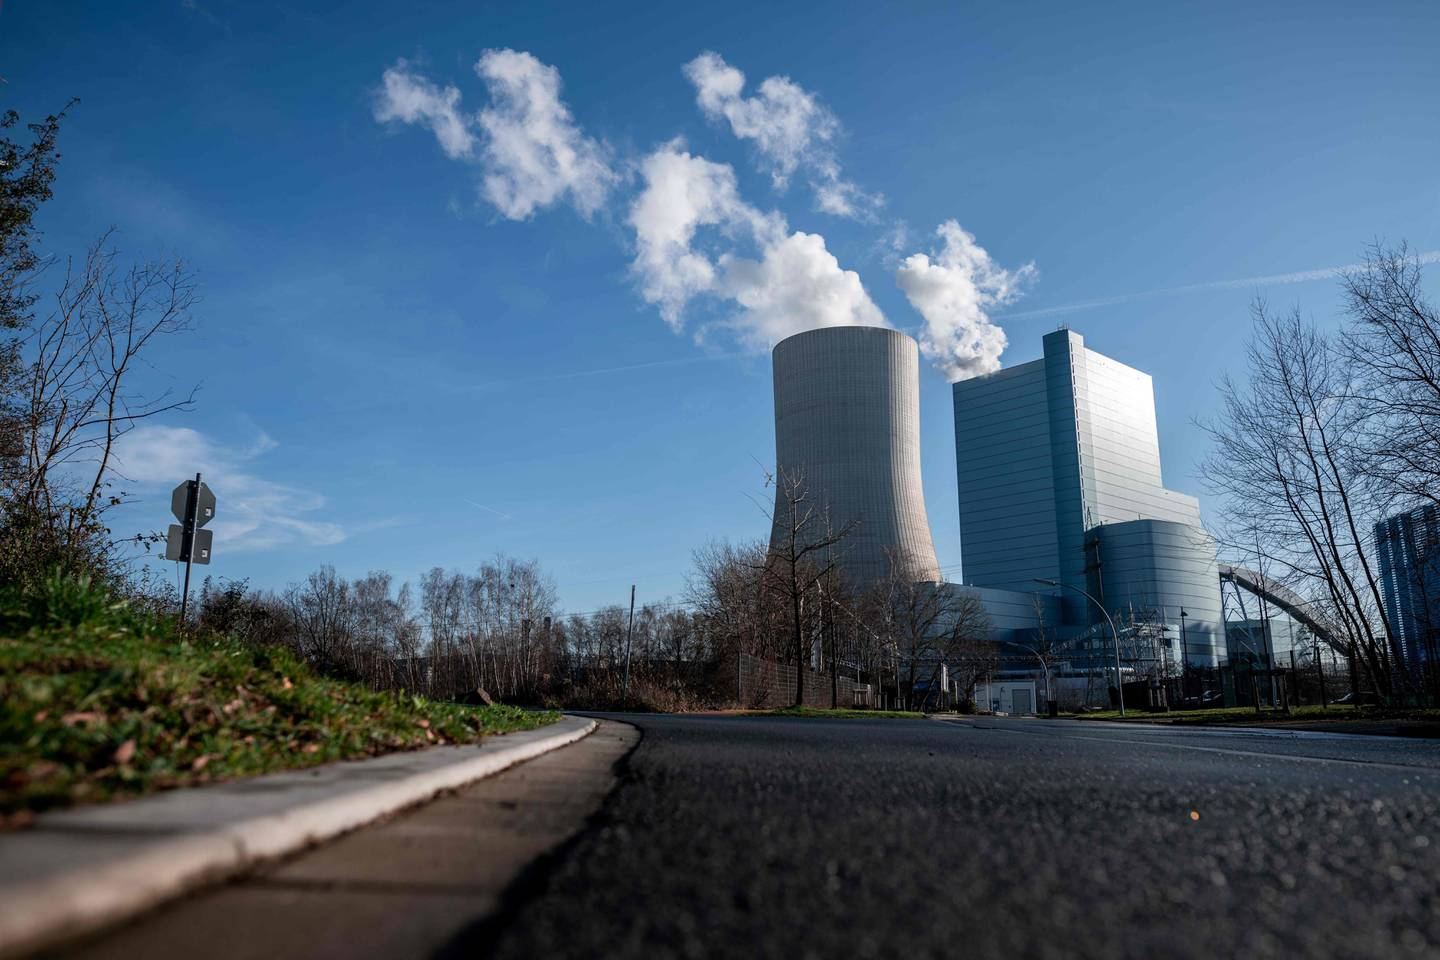 A picture taken on January 16, 2020 shows a view of the coal-fired power station Datteln 4 of supply company Uniper in Datteln, western Germany. (Photo by Fabian Strauch / dpa / AFP) / Germany OUT